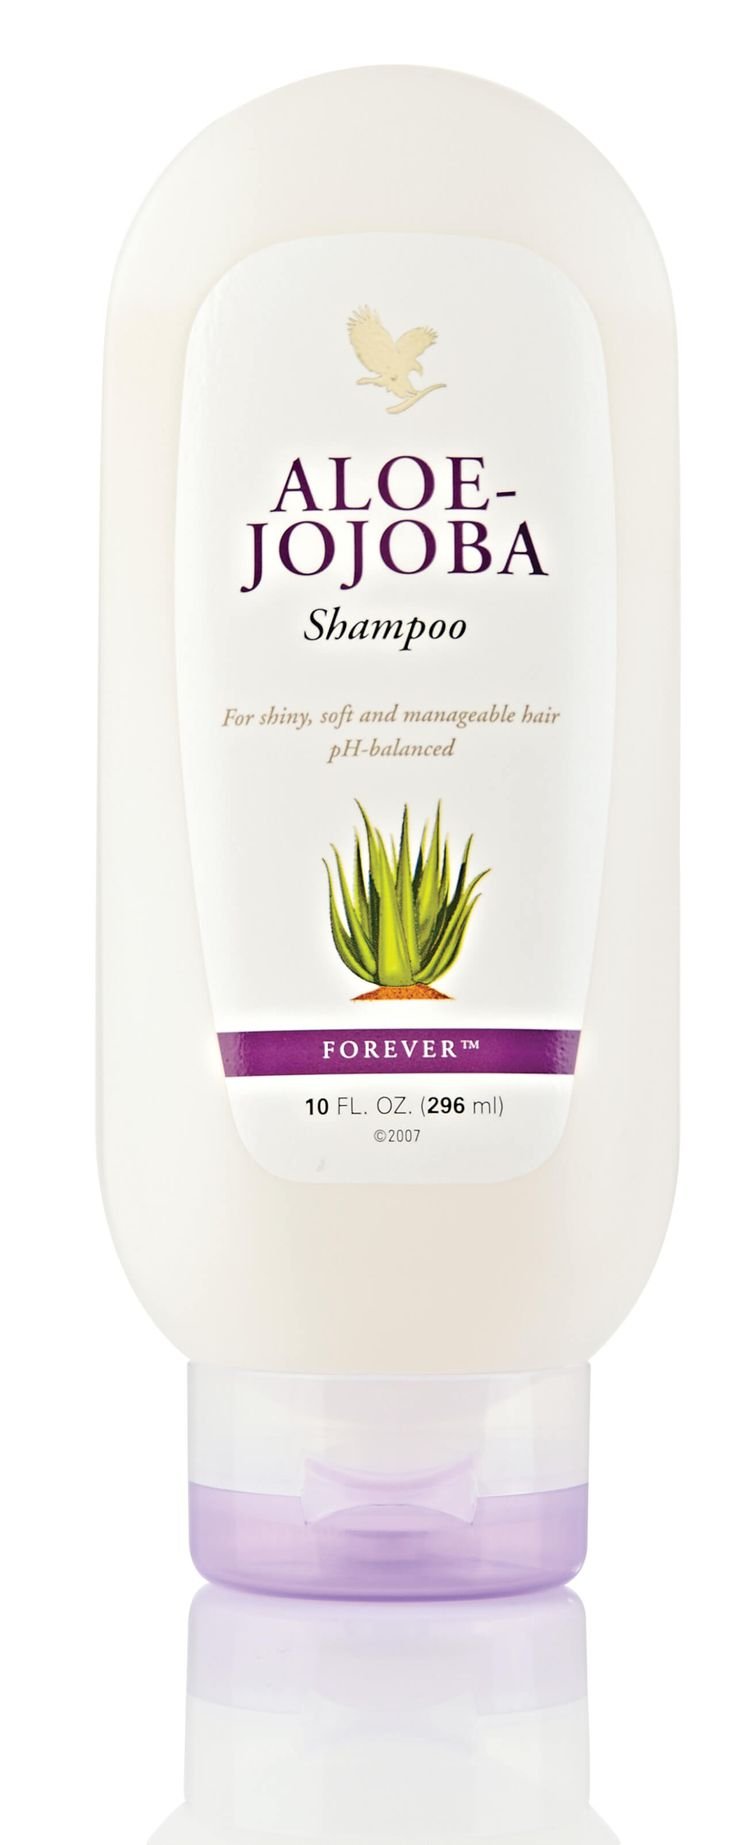 #ForeverLiving #Aloe Jojoba Shampoo is a gentle product, yet it's good at keeping greasy hair at bay, leaving your hair glossy and manageable. http://link.flp.social/9udhUJ